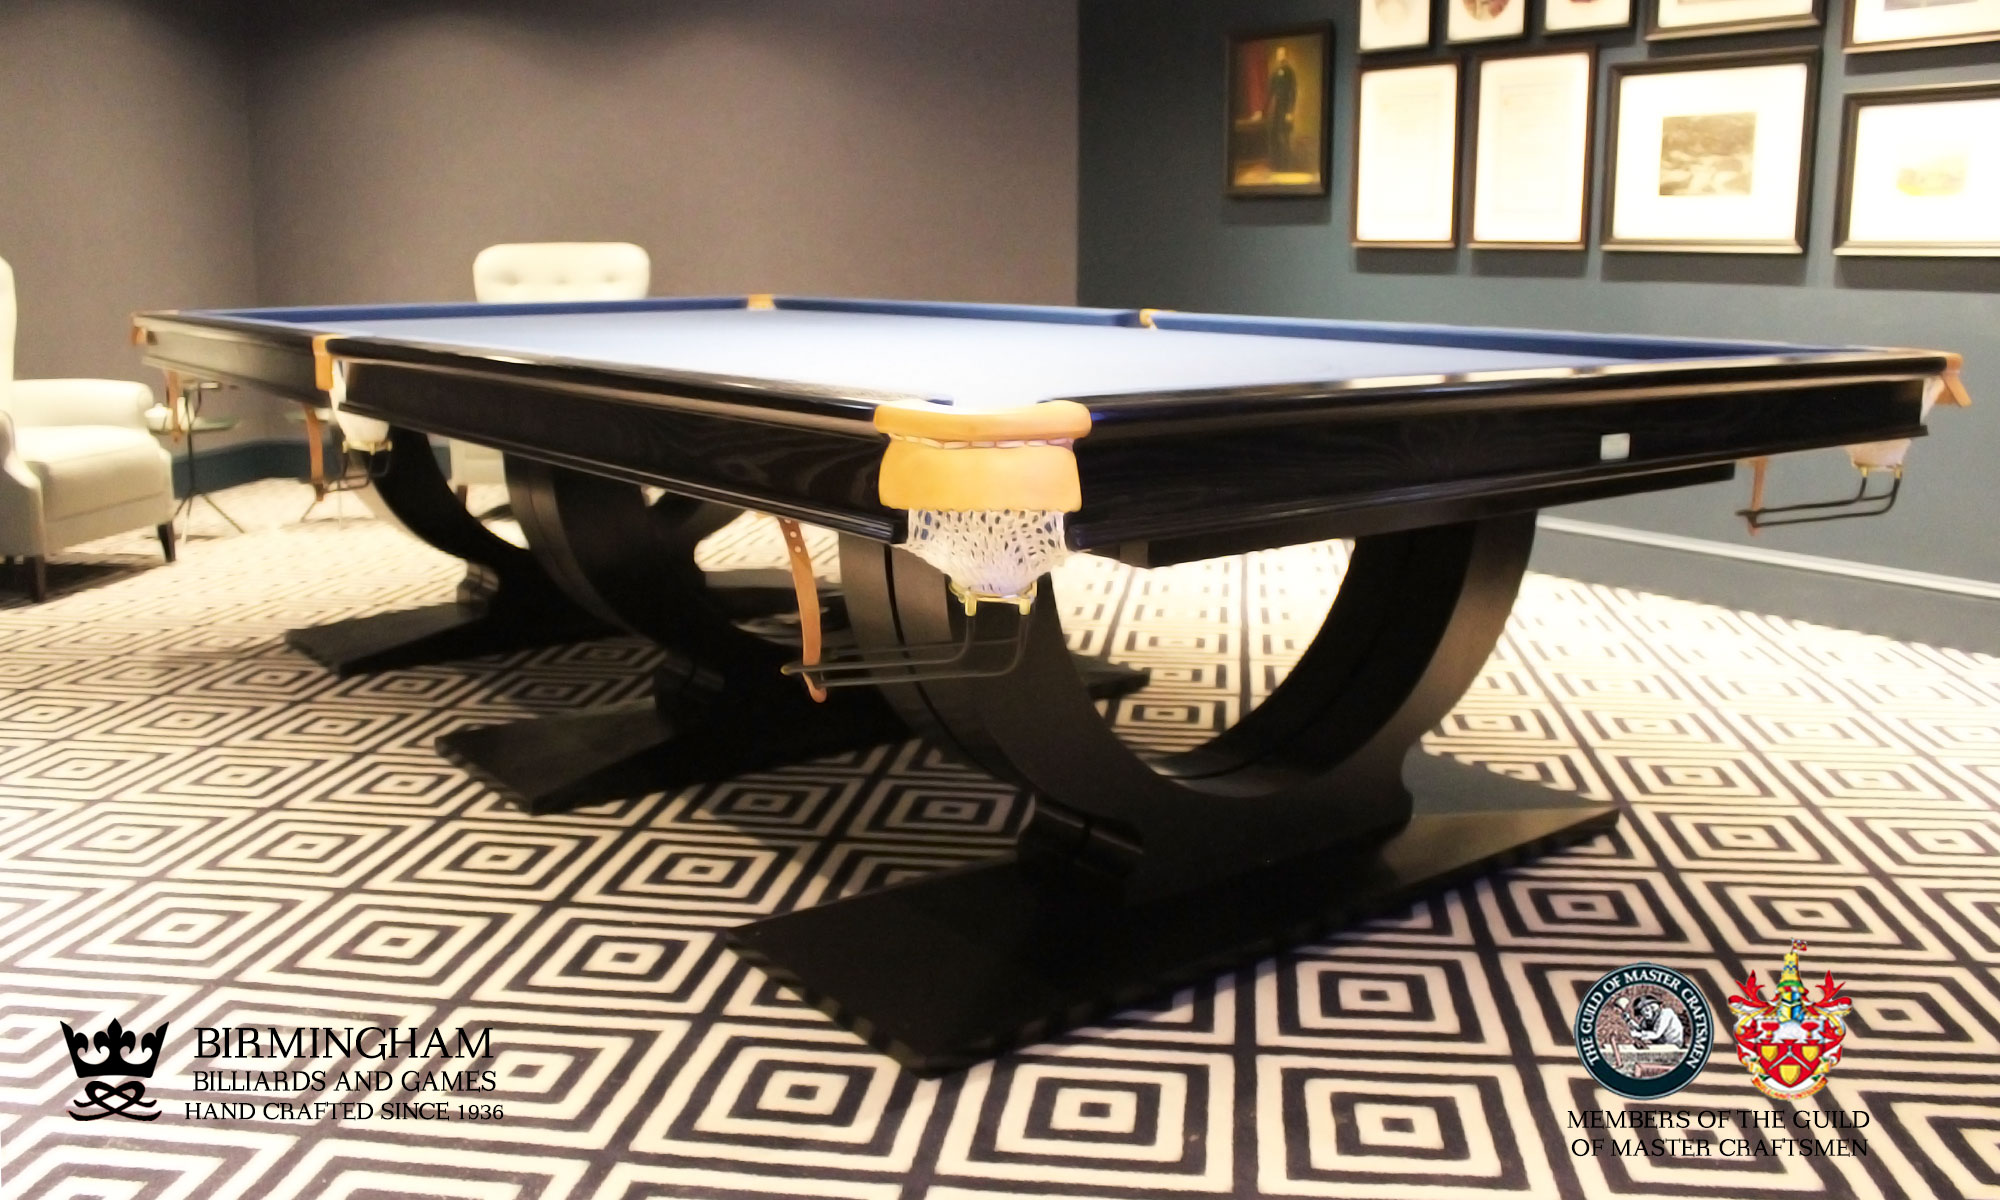 Roma snooker table